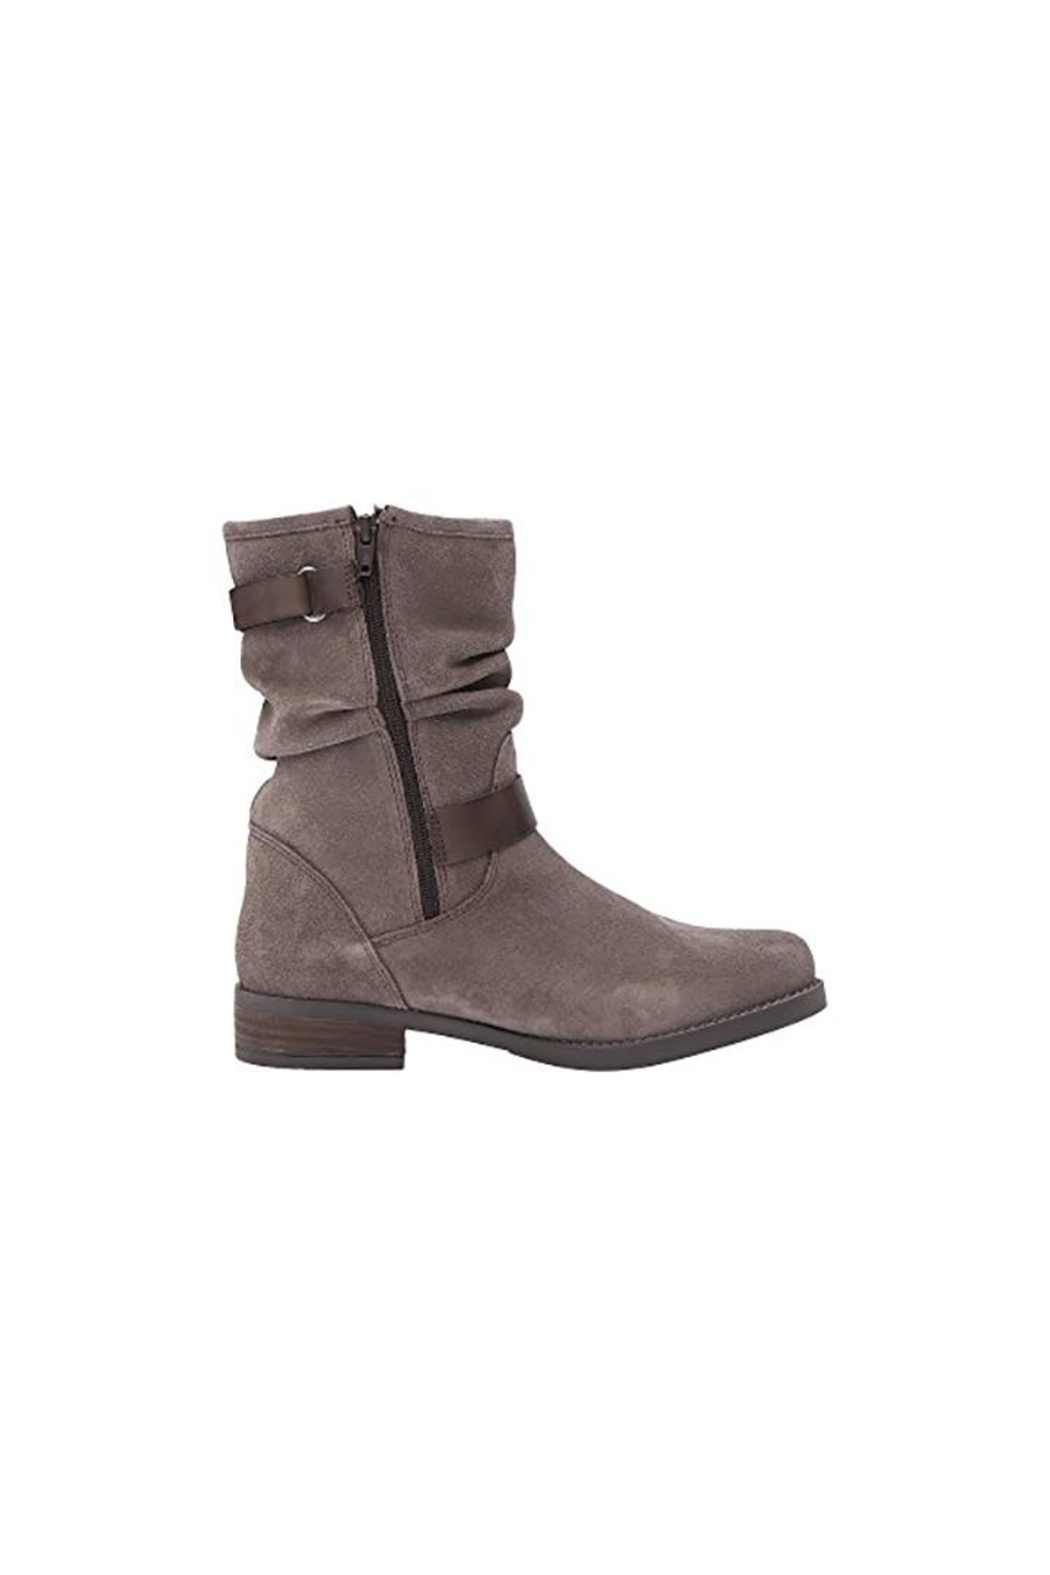 Eric Michael Venice Suede Slouch-Boot - Side Cropped Image